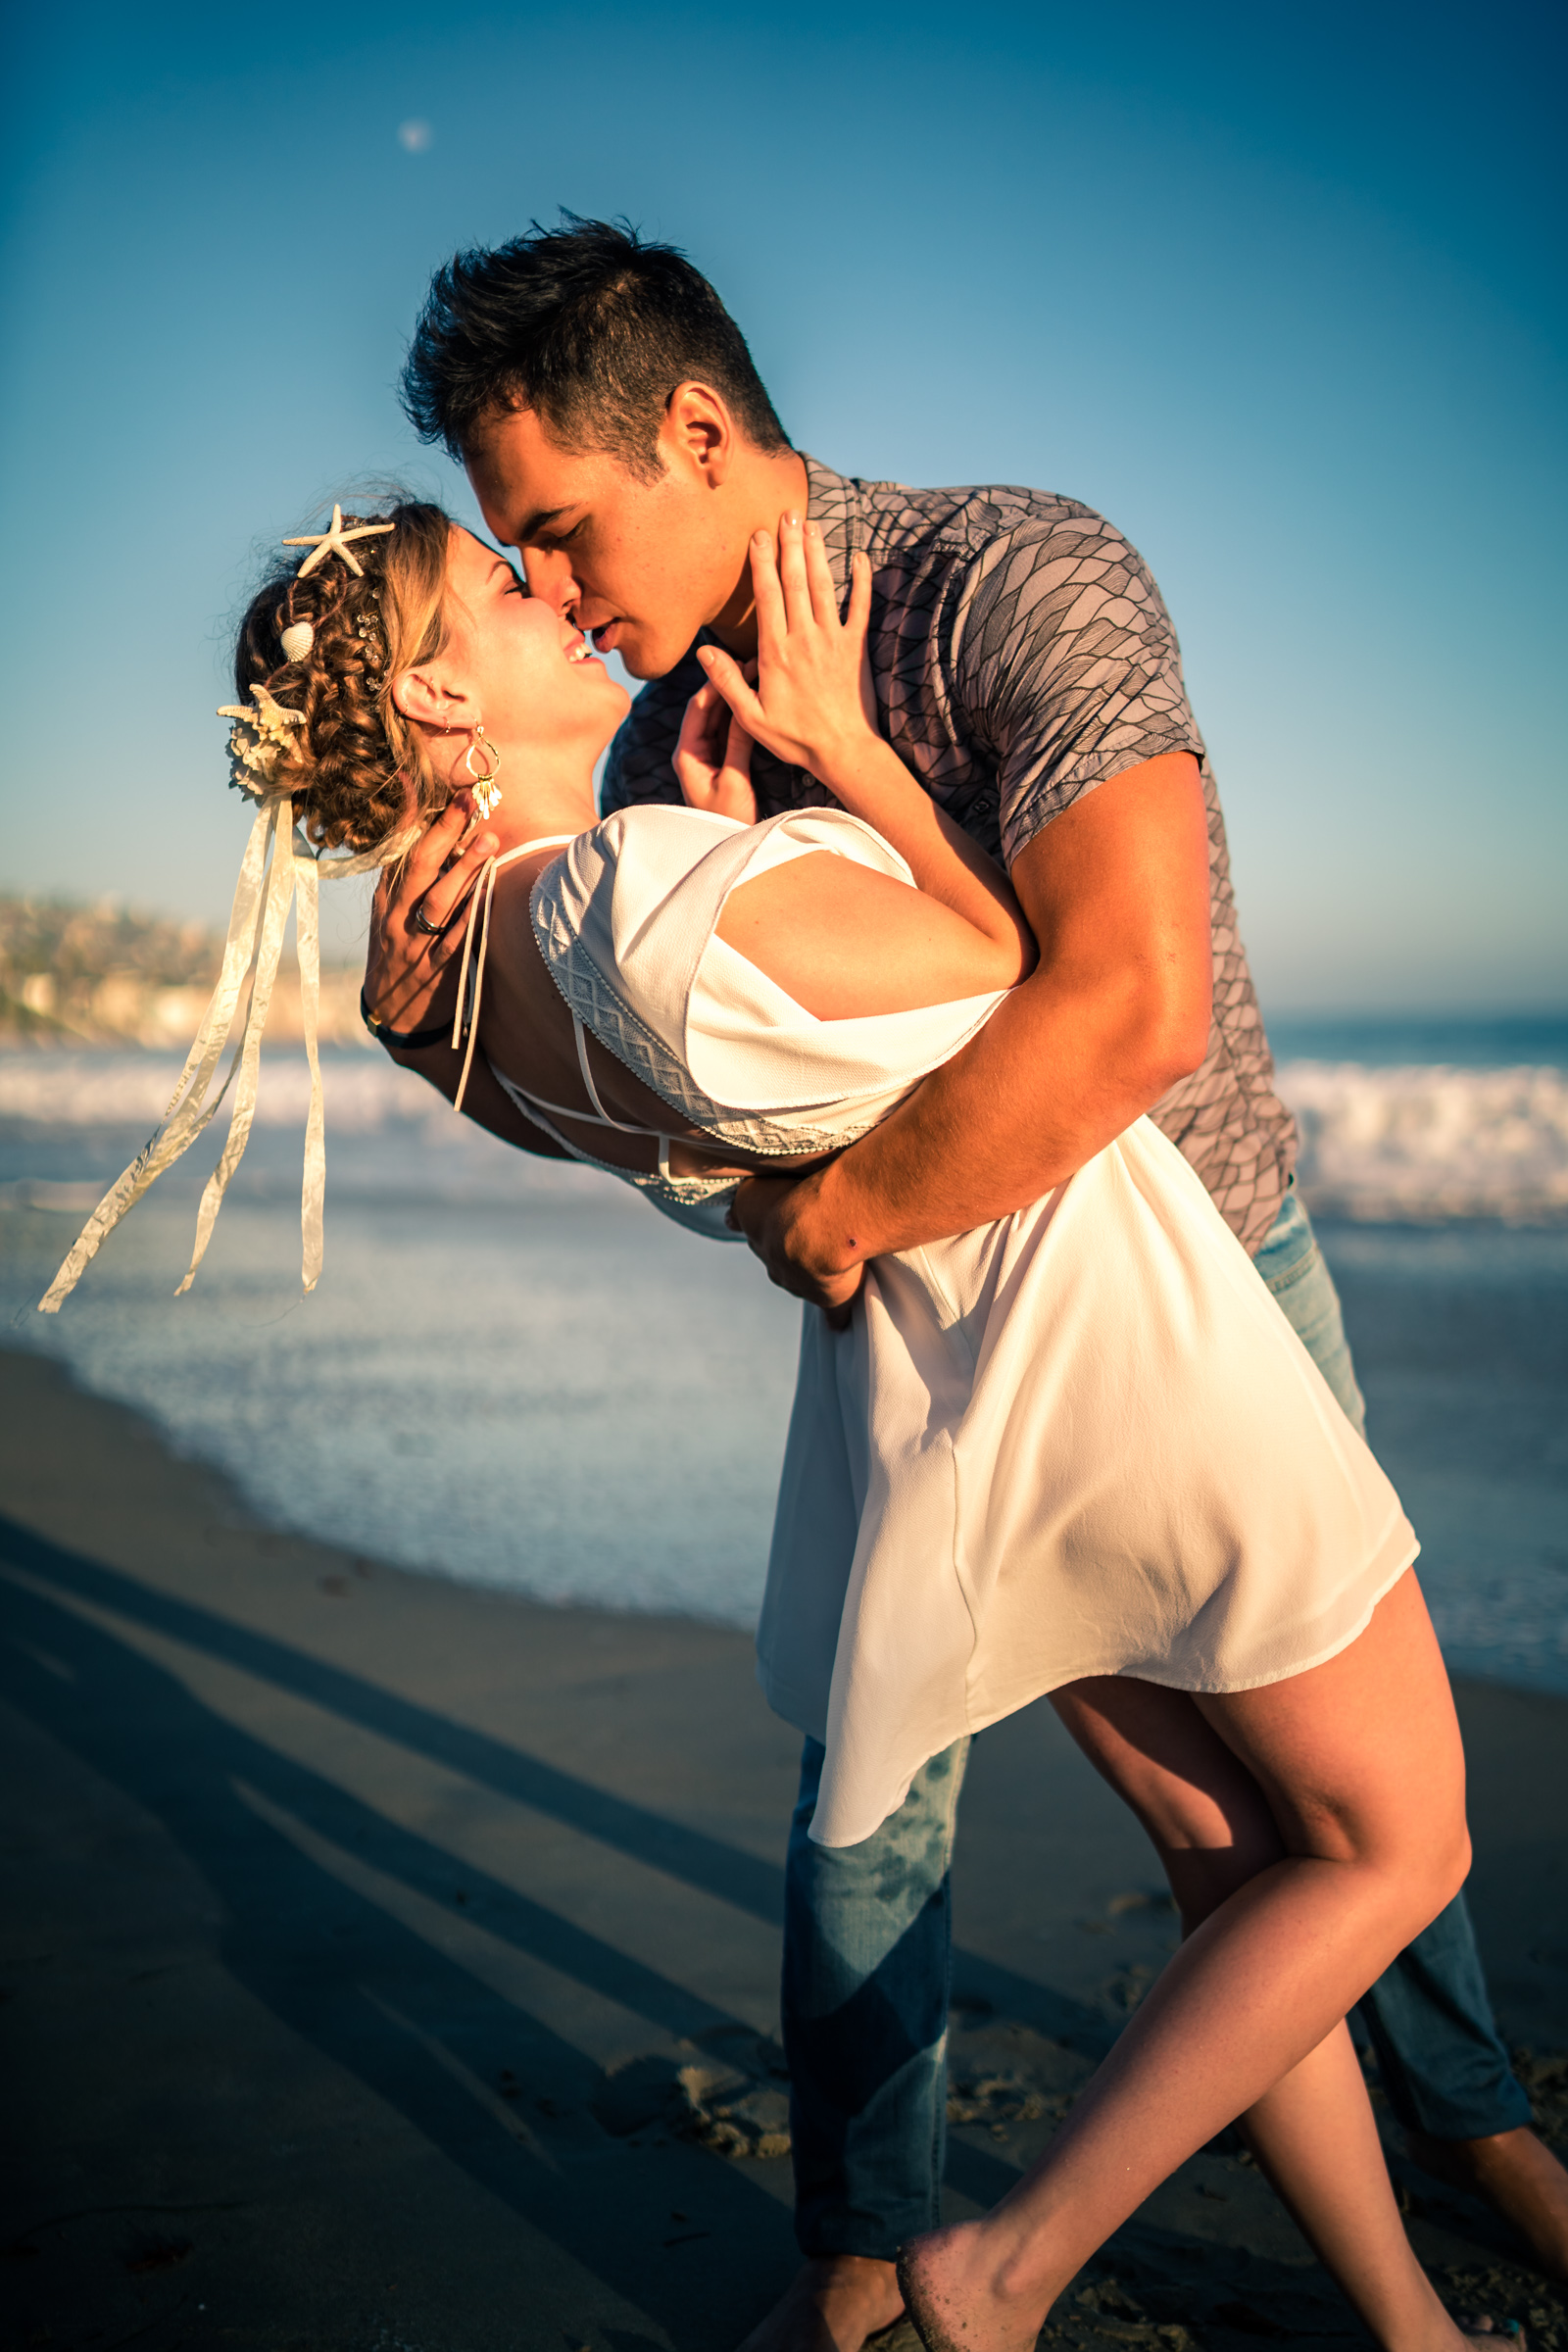 33__Bruno-Amanda-Laguna-beach-engagement_Joseph-Barber-Weddings_3018.jpg